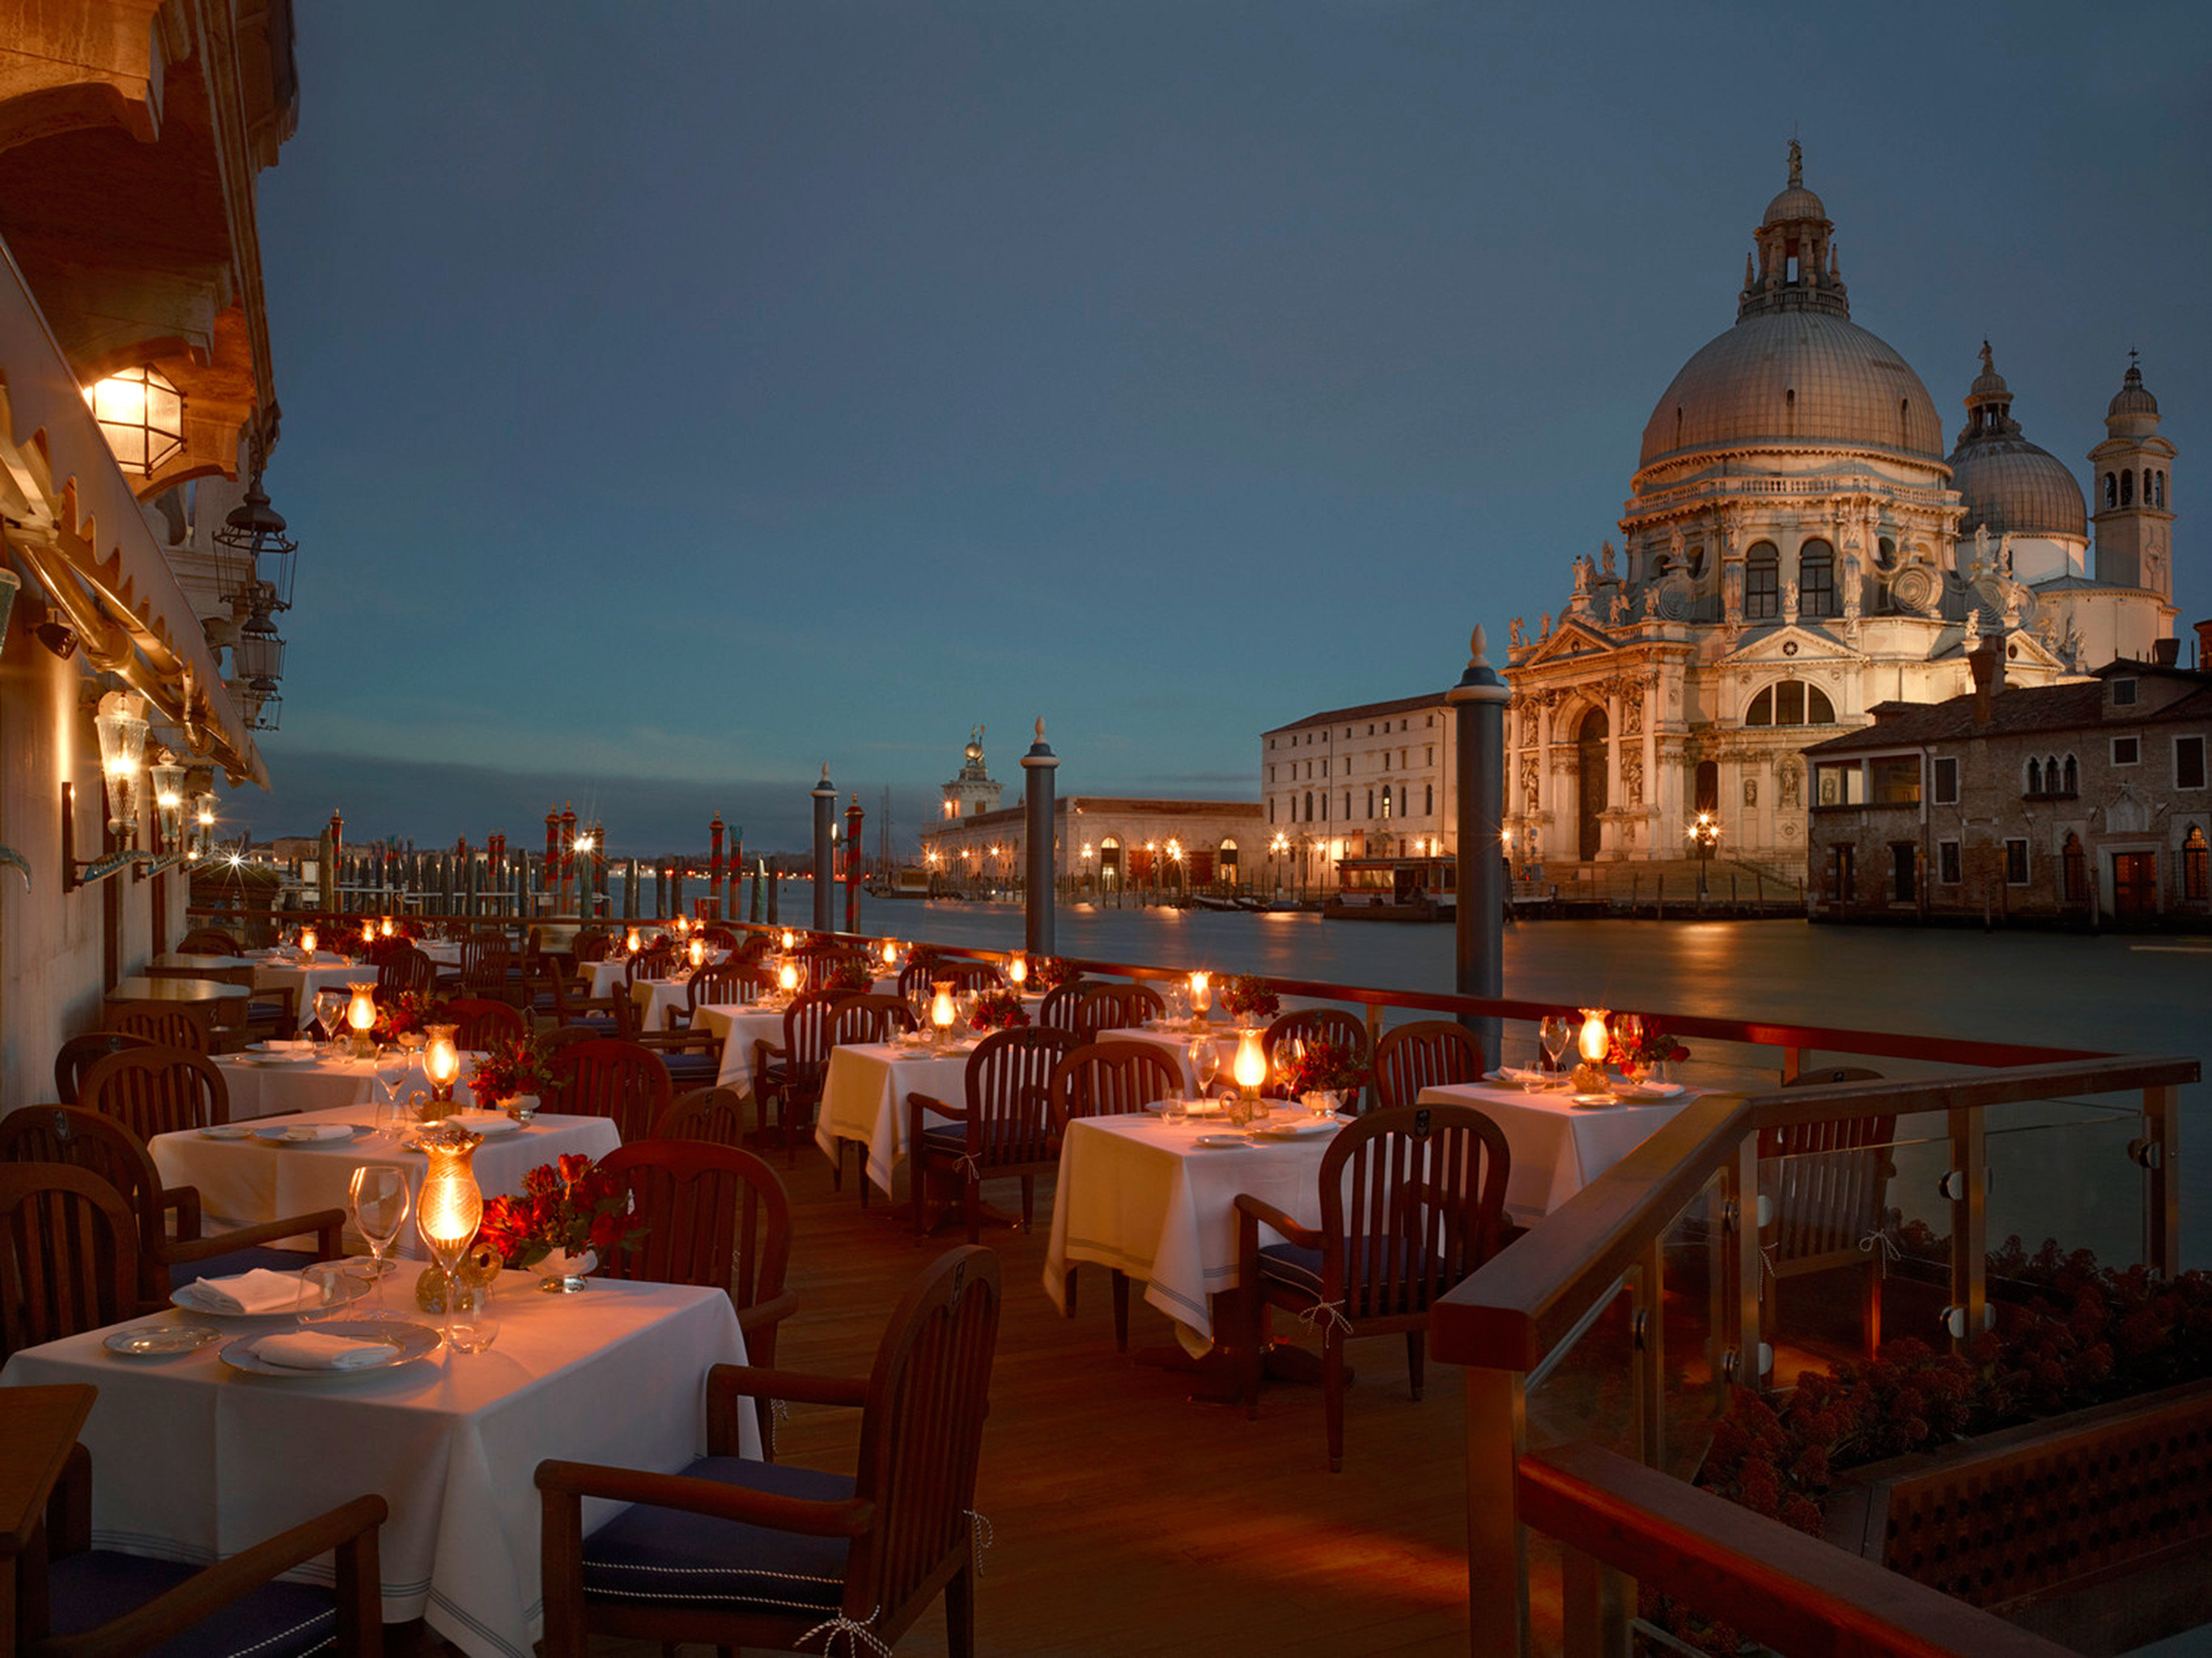 City Deck Dining Elegant Historic Landmarks Luxury Monuments Scenic views building night evening restaurant palace Resort